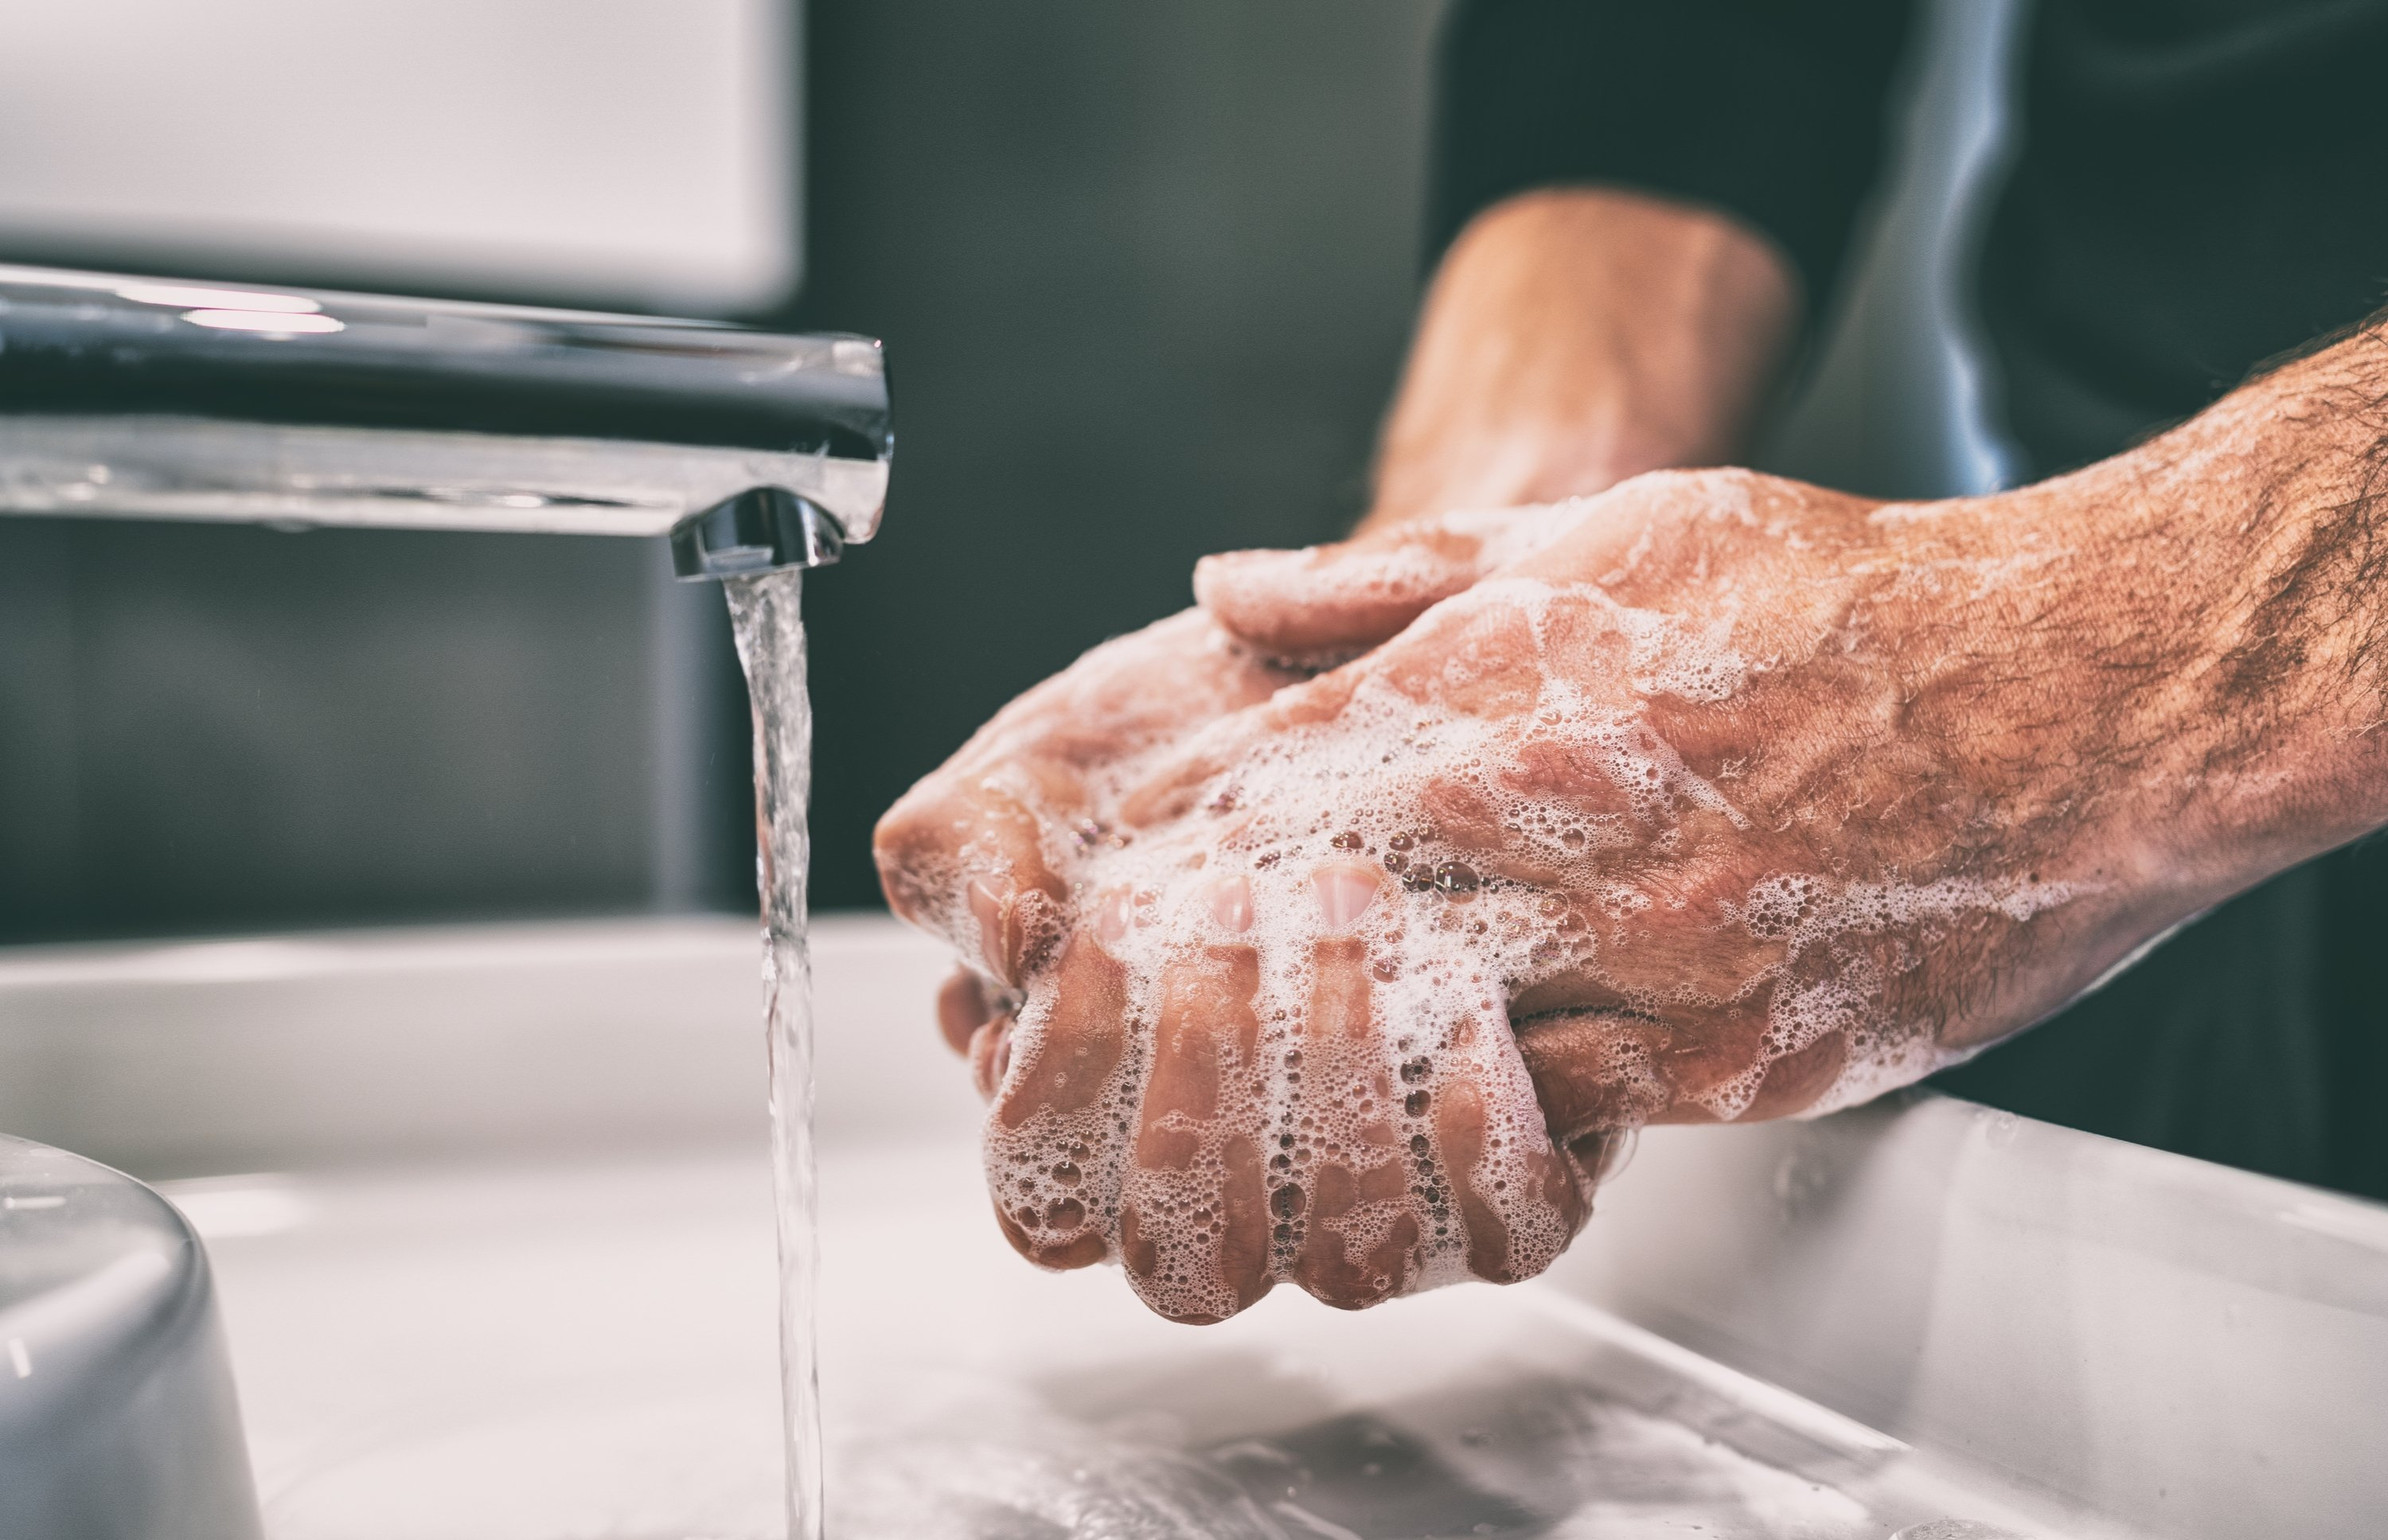 When washing your hands, make sure you get the underside of your nails too. (Shutterstock Photo)